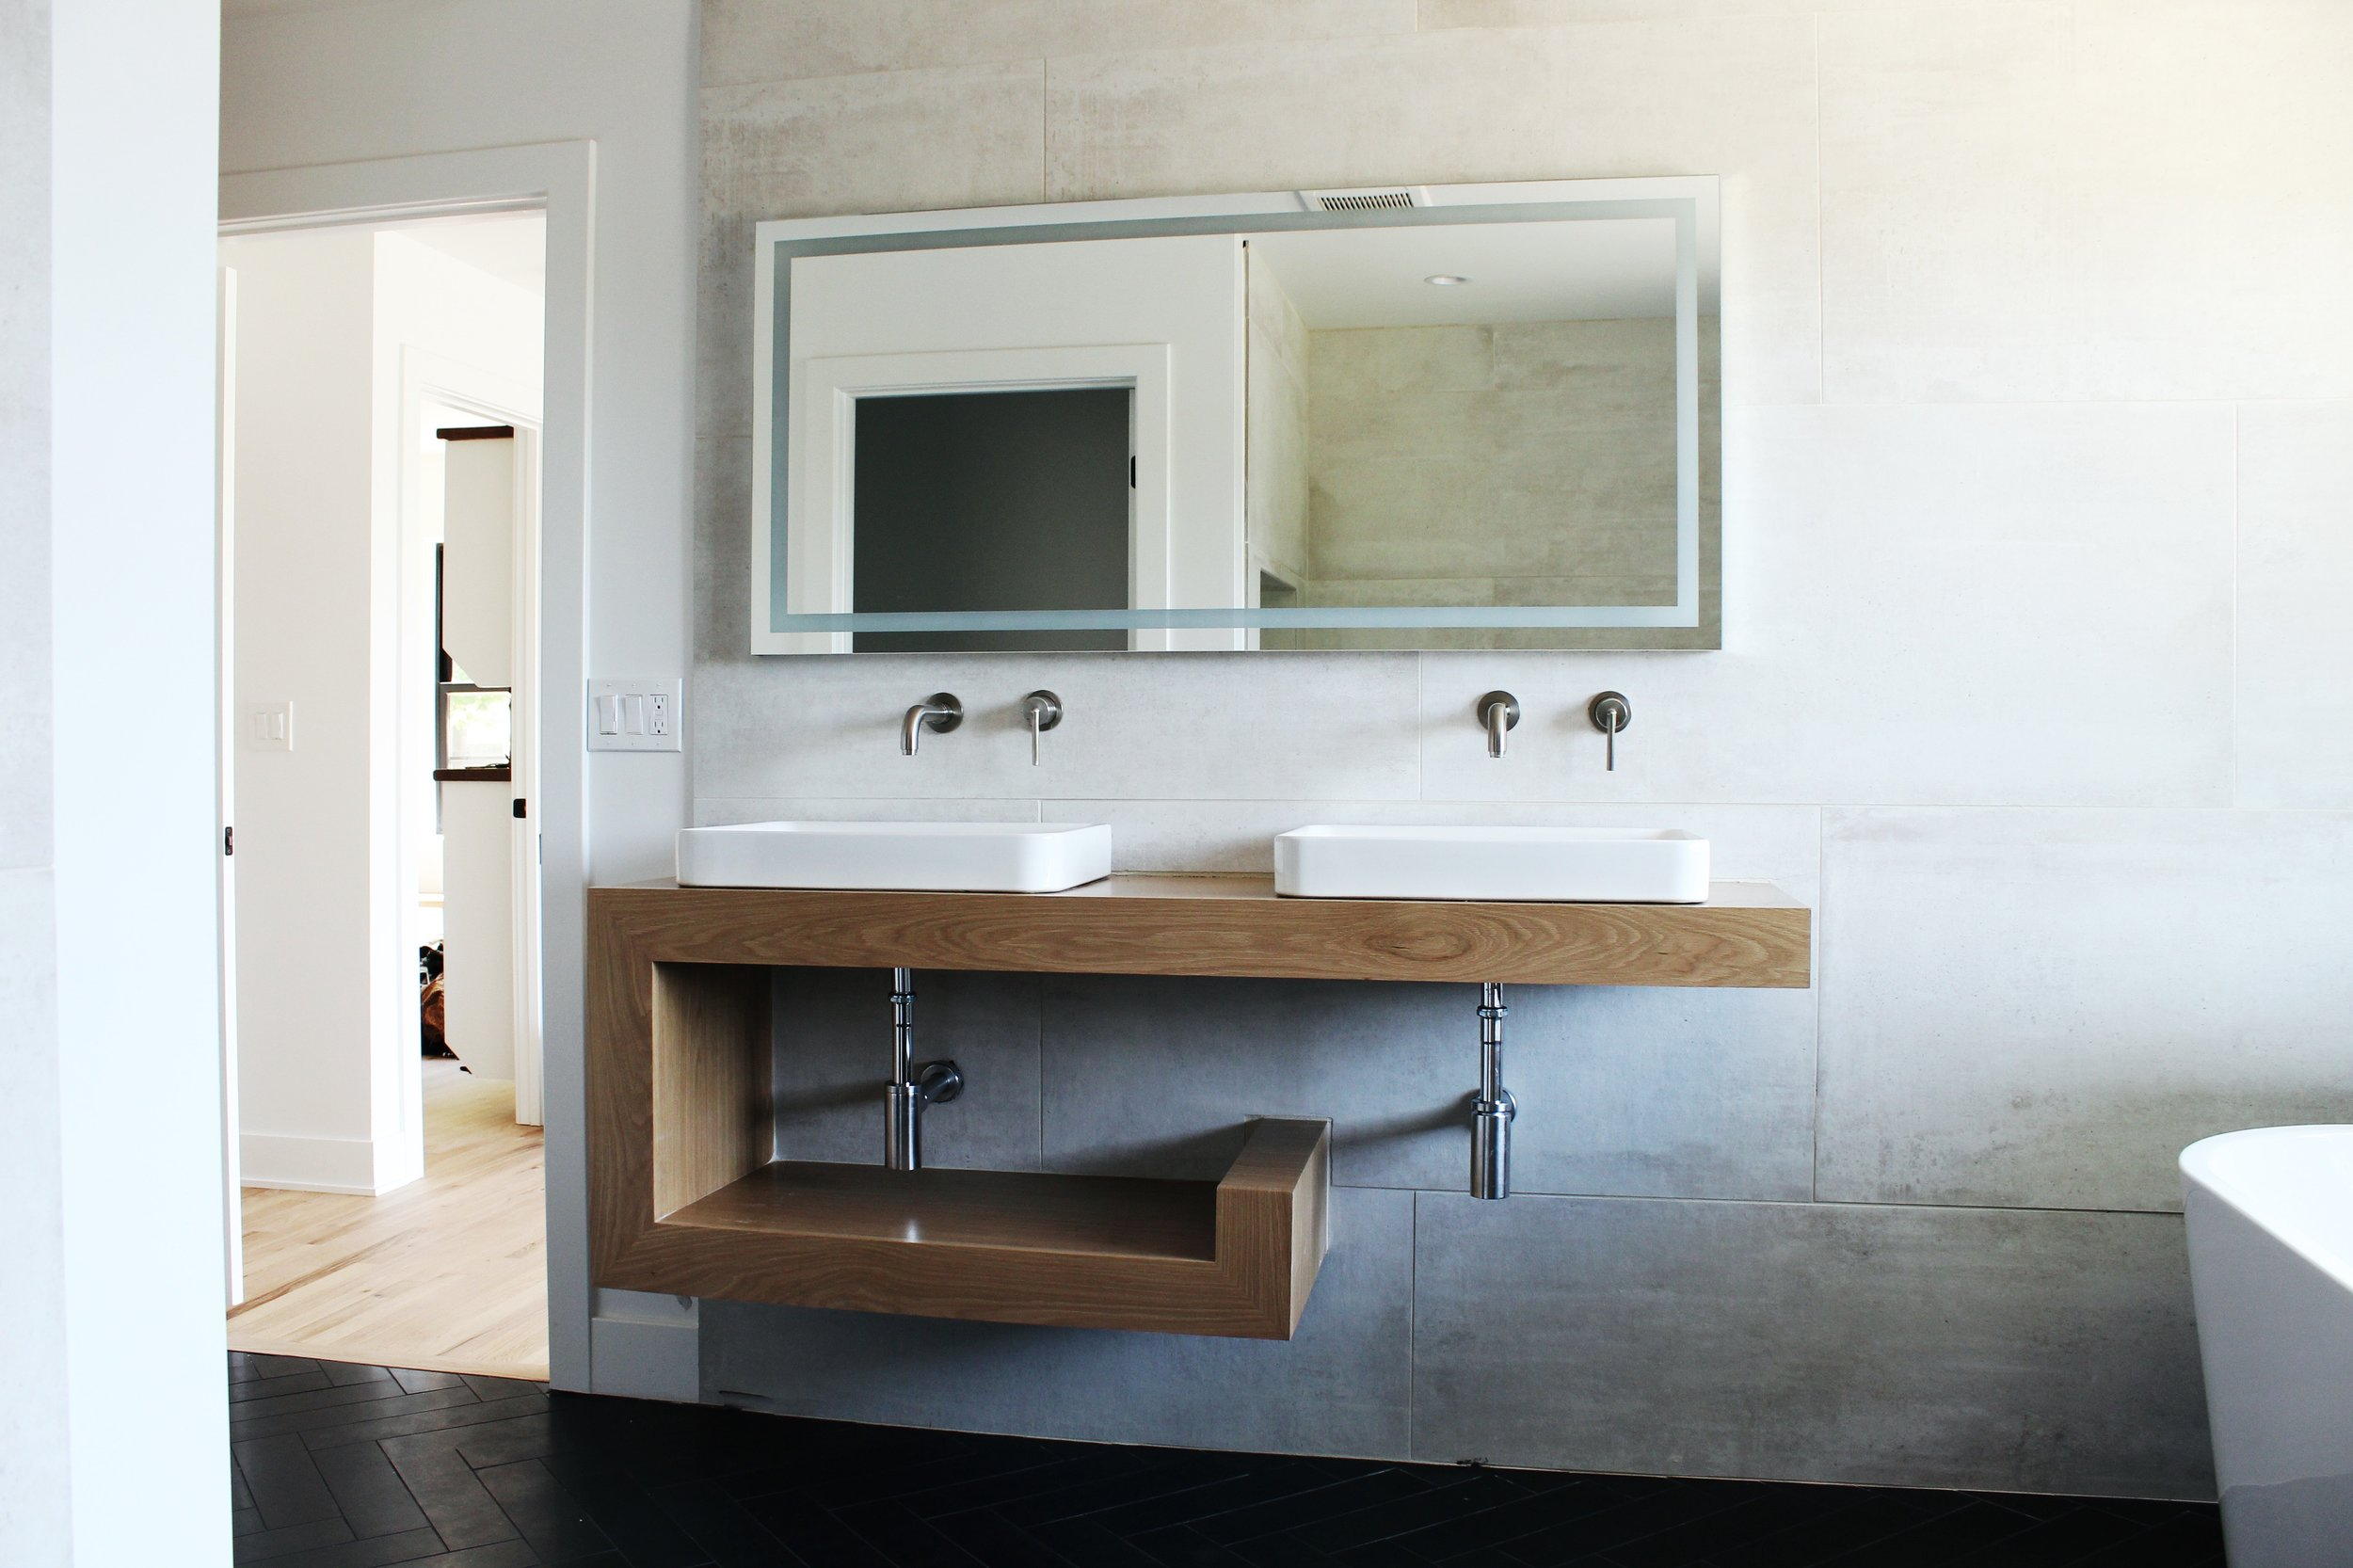 Design, Fabrication, Installation: Wes Edwin Design in collaboration with the homeowner